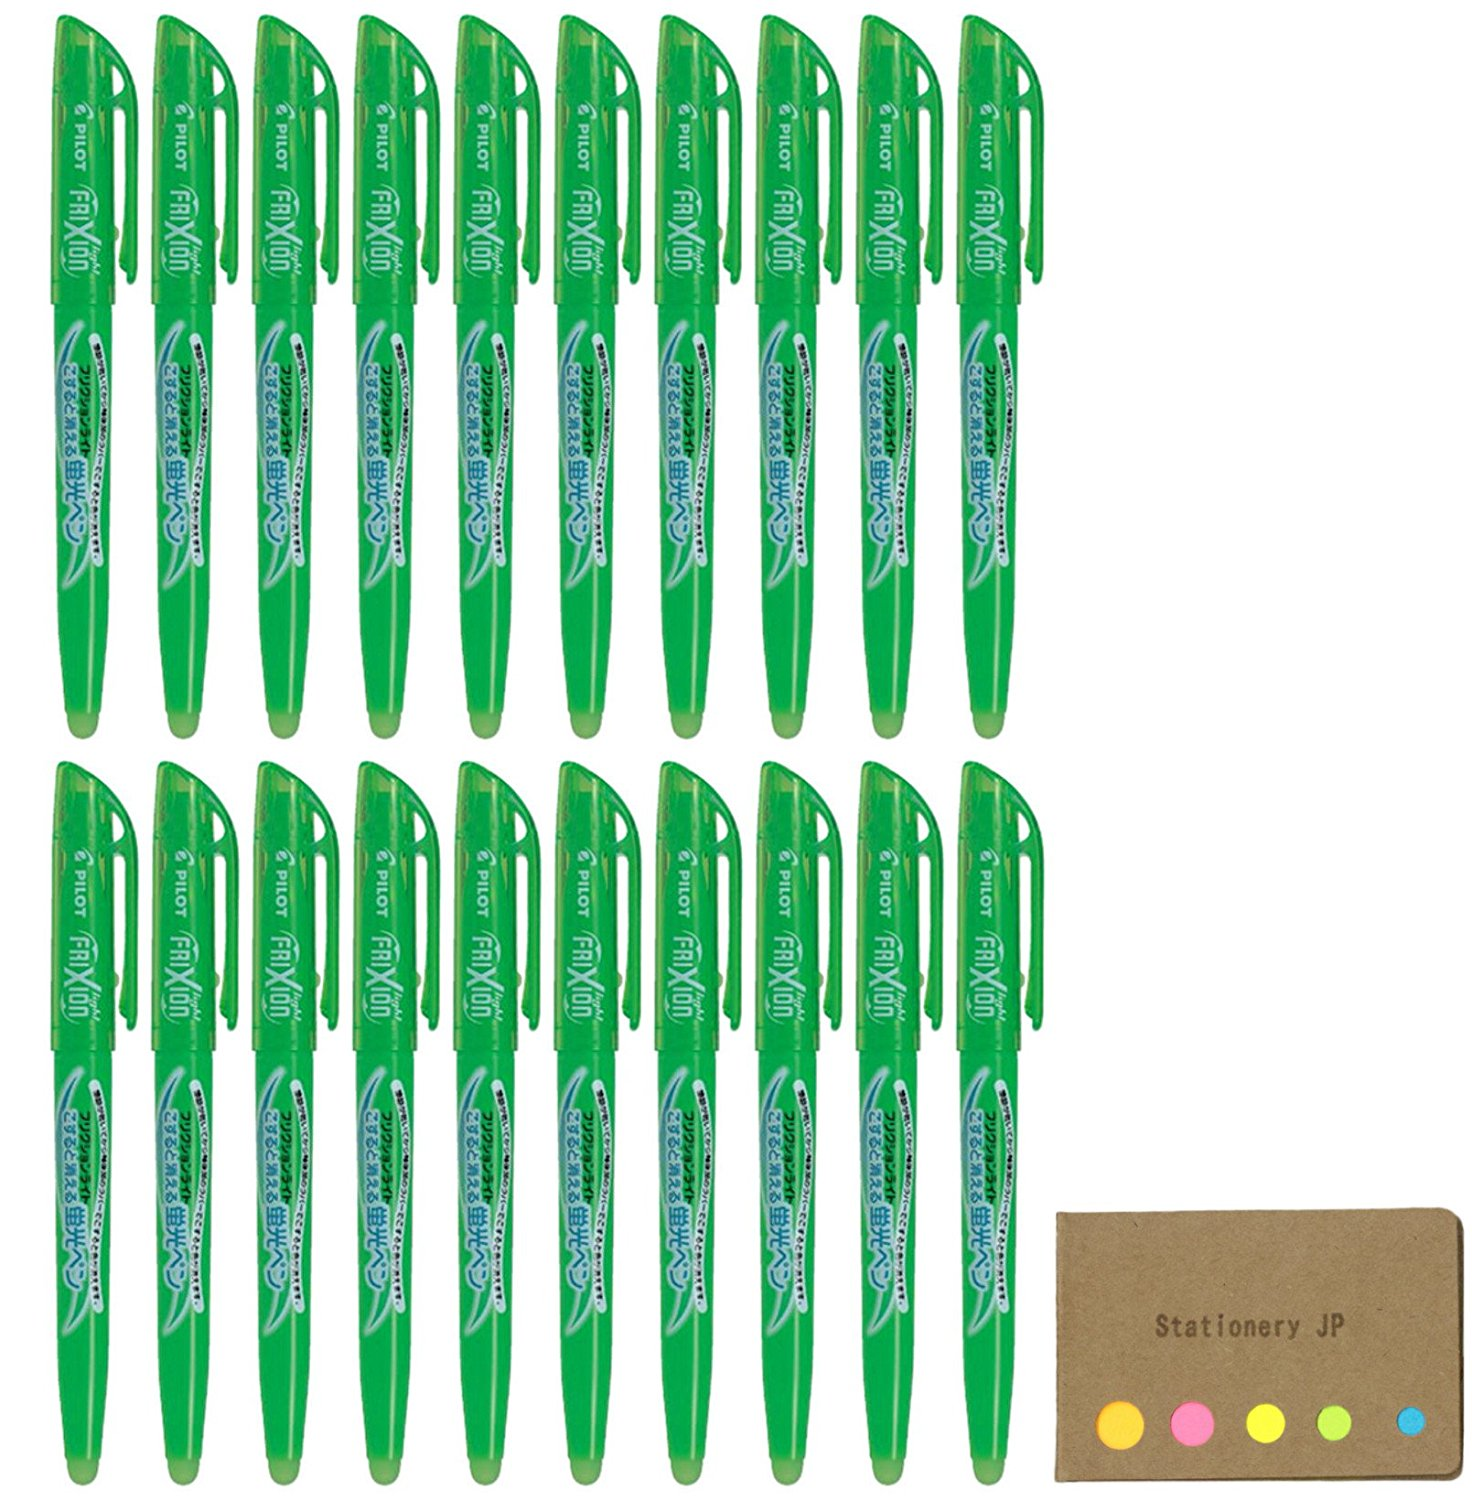 Pilot Frixion Erasable Highlighter Pen, Green Ink, 20-pack, Sticky Notes Value Set